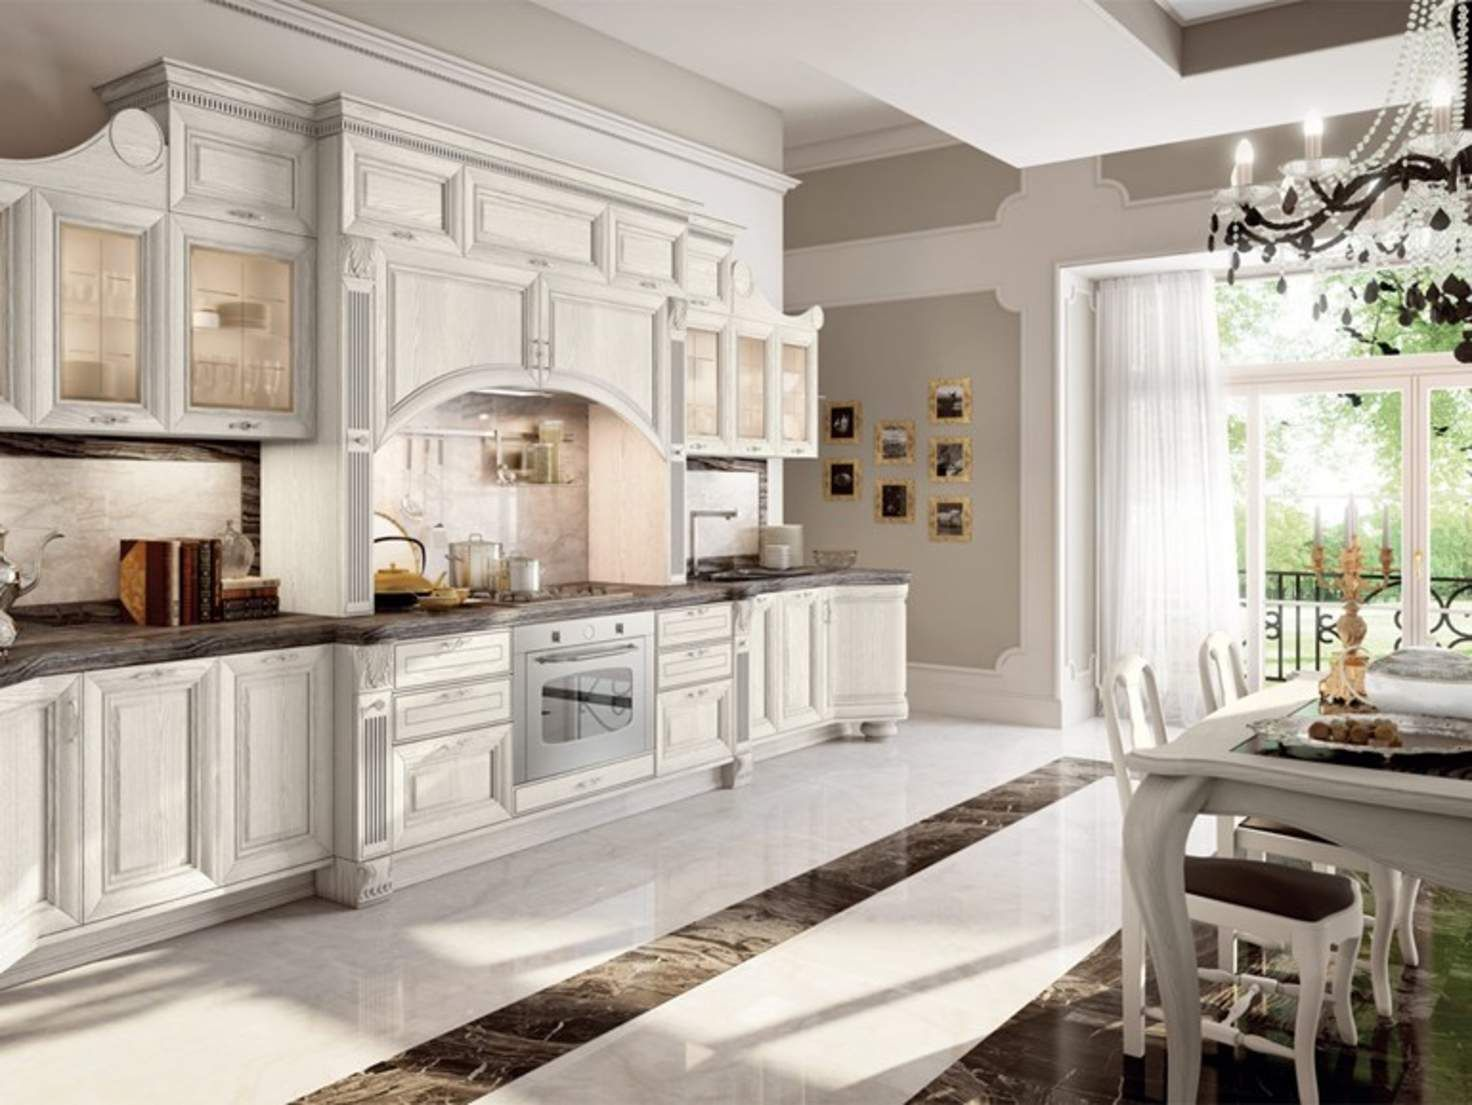 Ricambi Cucine Lube Napoli decapÉ kitchen with handles pantheon | lacquered kitchen